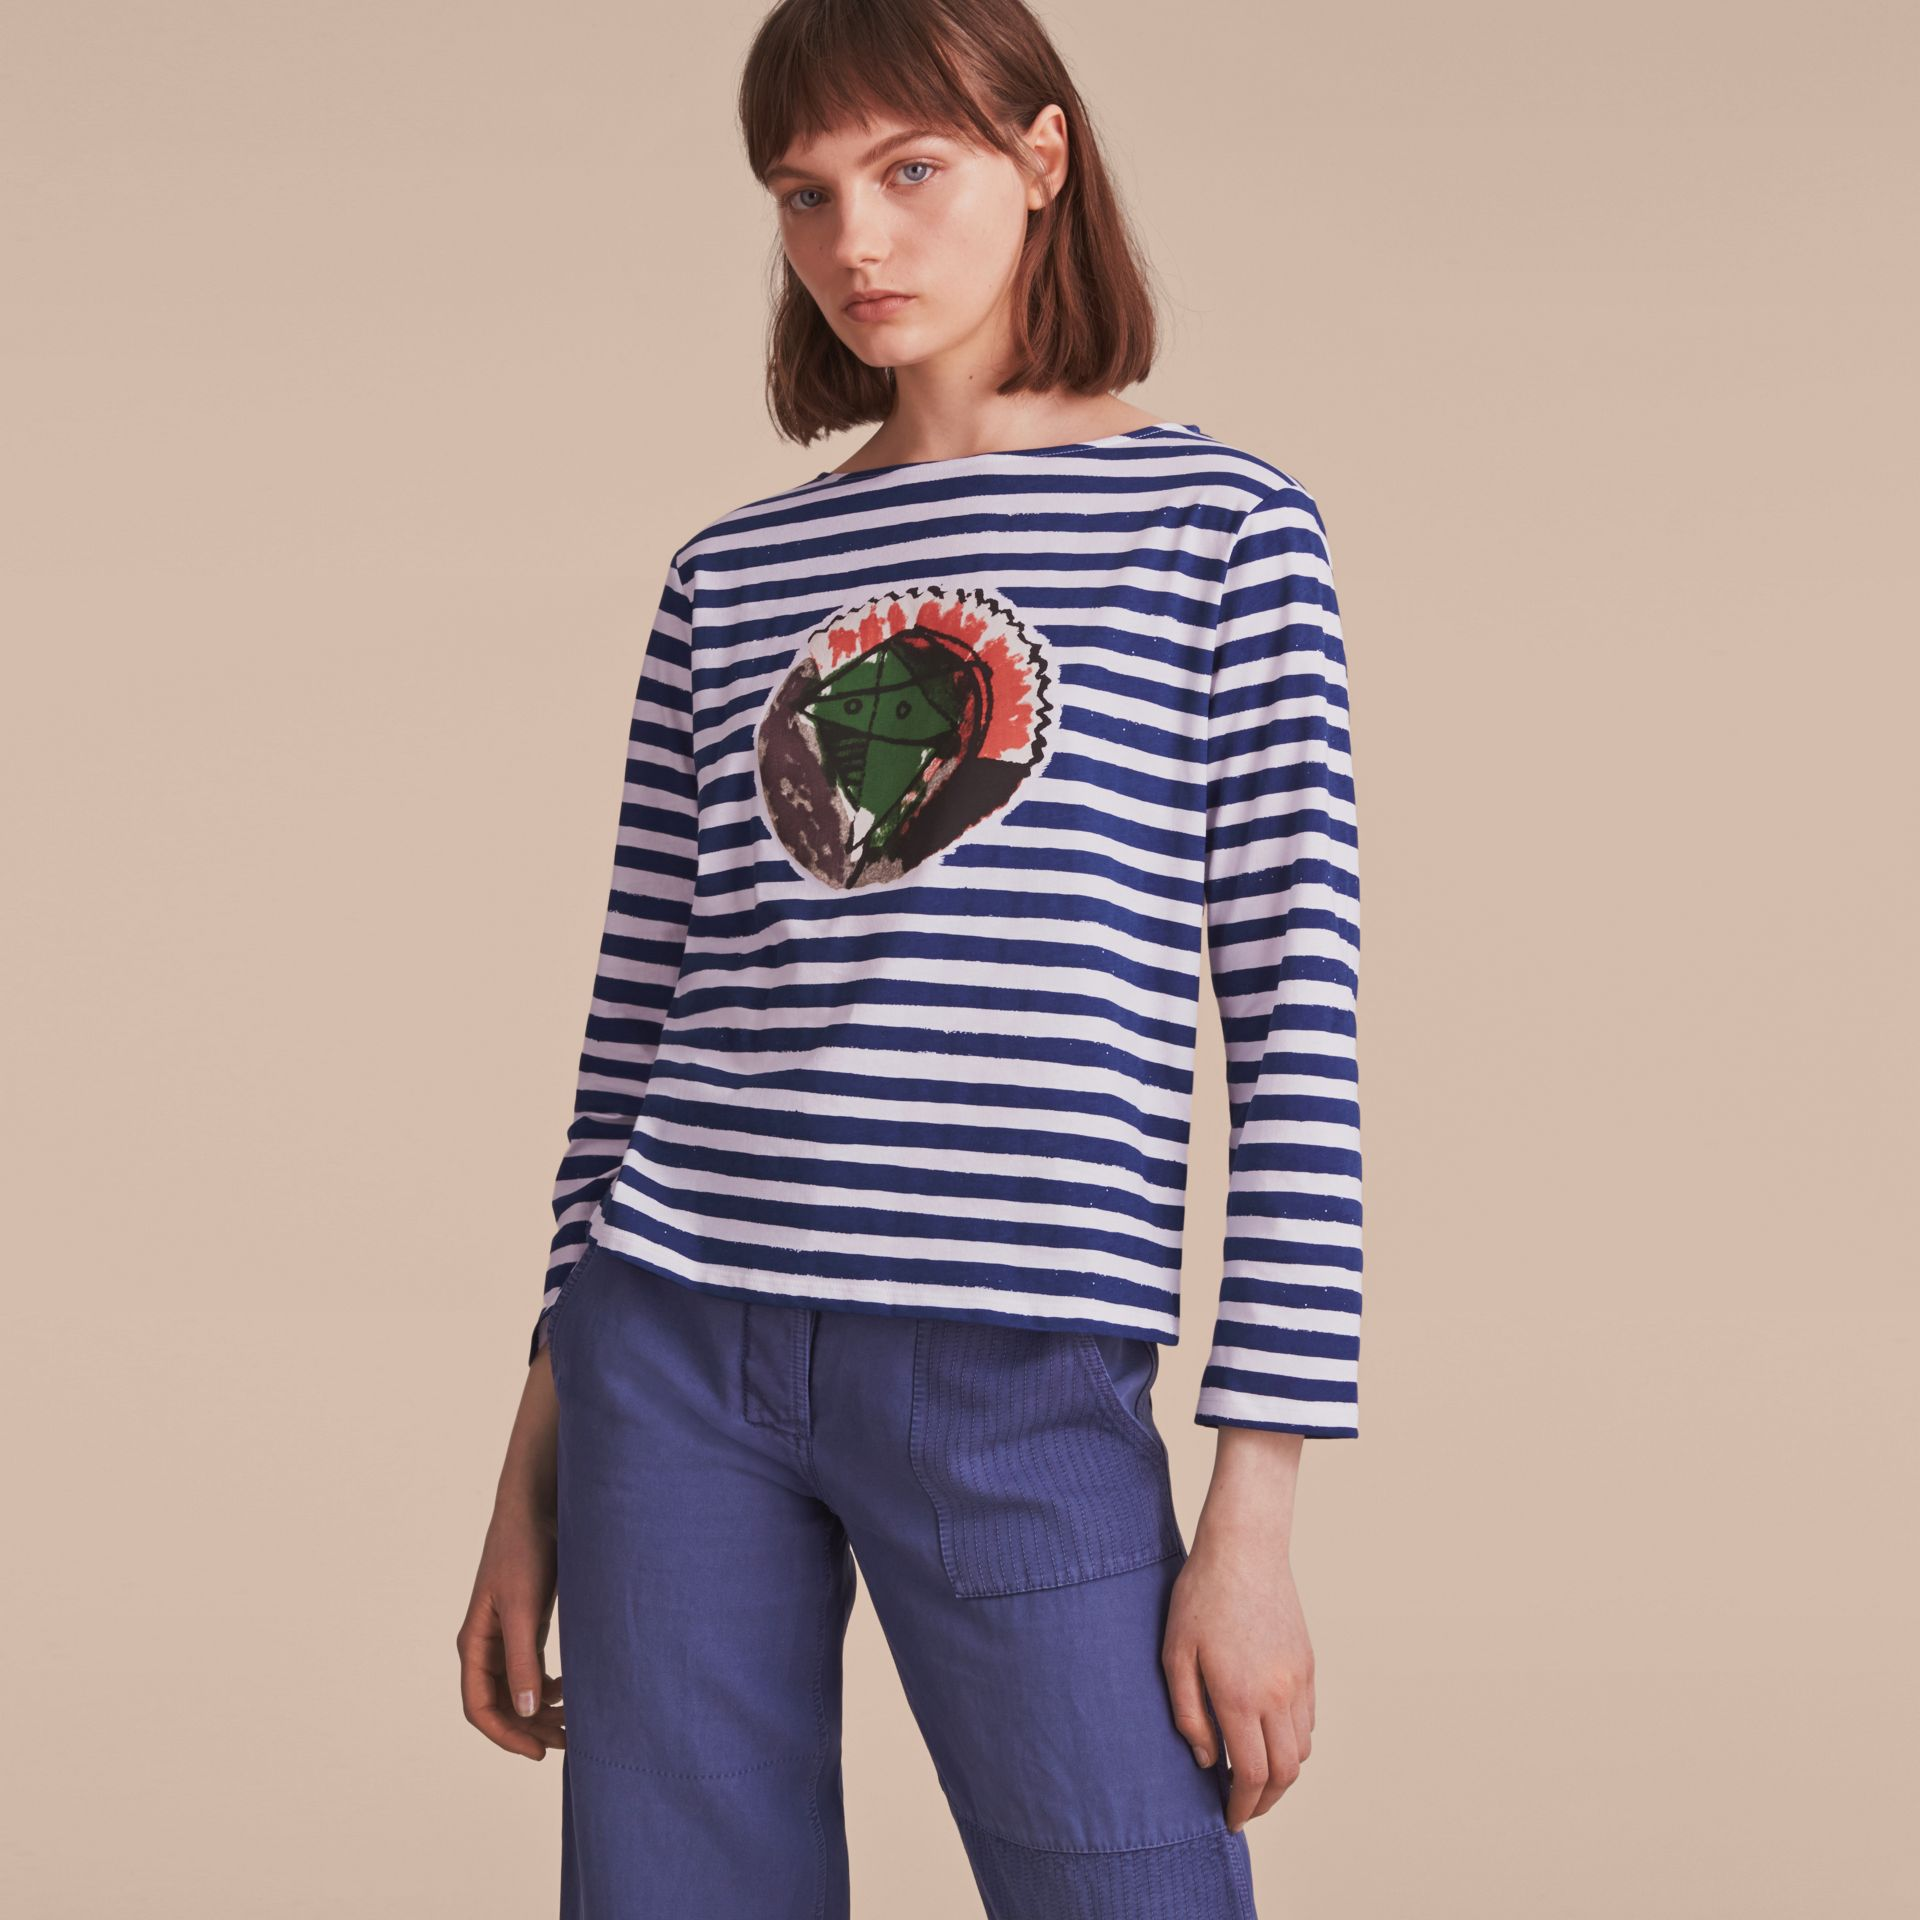 Pallas Heads Print Breton Stripe Jersey Top in Ink Blue/white - Women | Burberry United Kingdom - gallery image 5